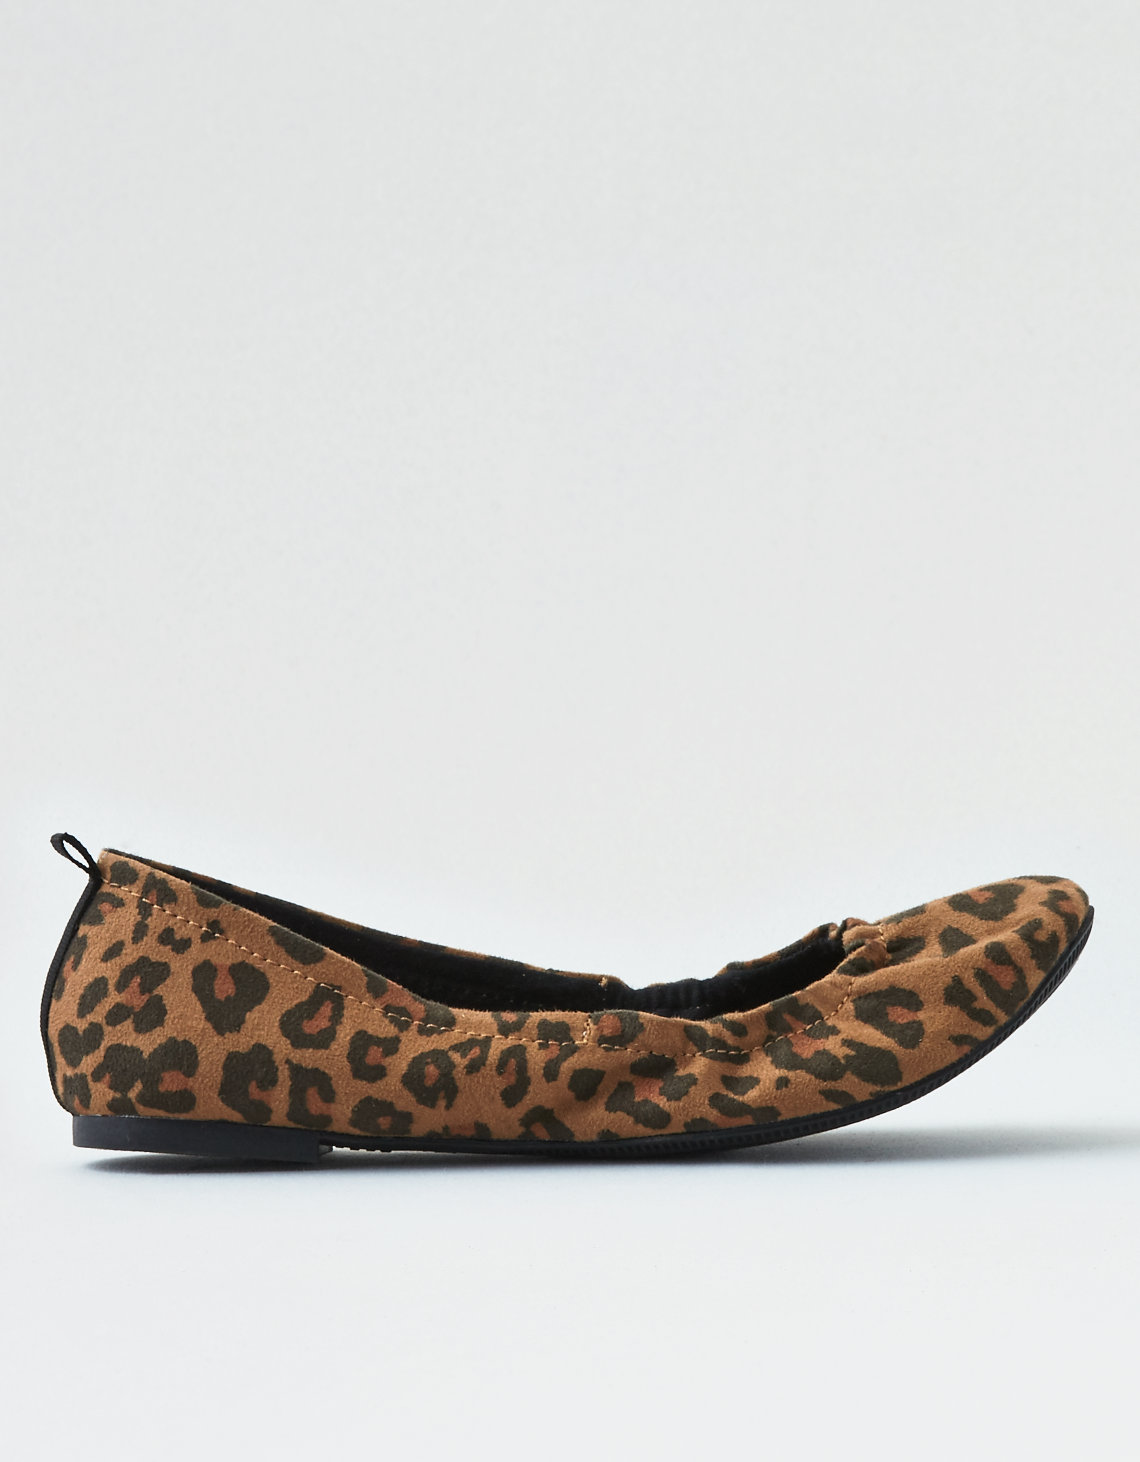 cf96b8431748 AEO Leopard Print Flats. Placeholder image. Product Image